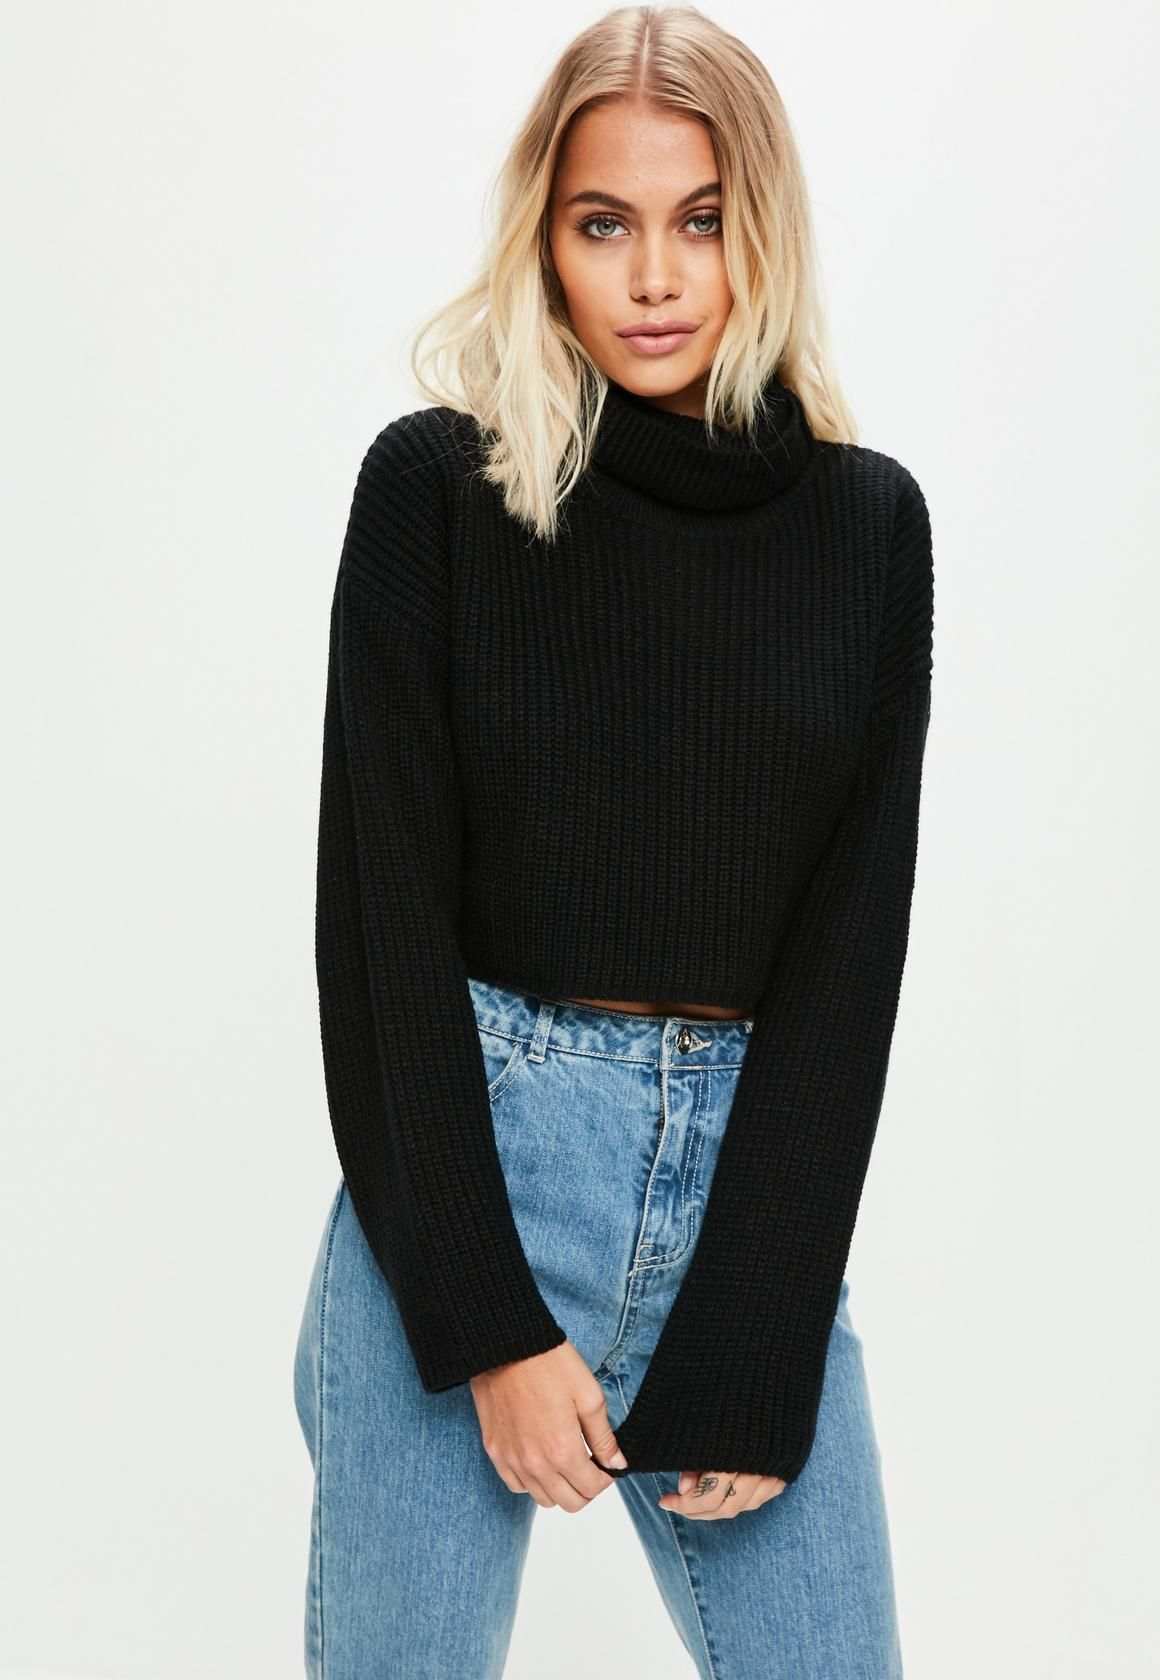 7149adfd87a2d0 Black Roll Neck Knitted Crop Sweater | Buy | Roll neck sweater ...